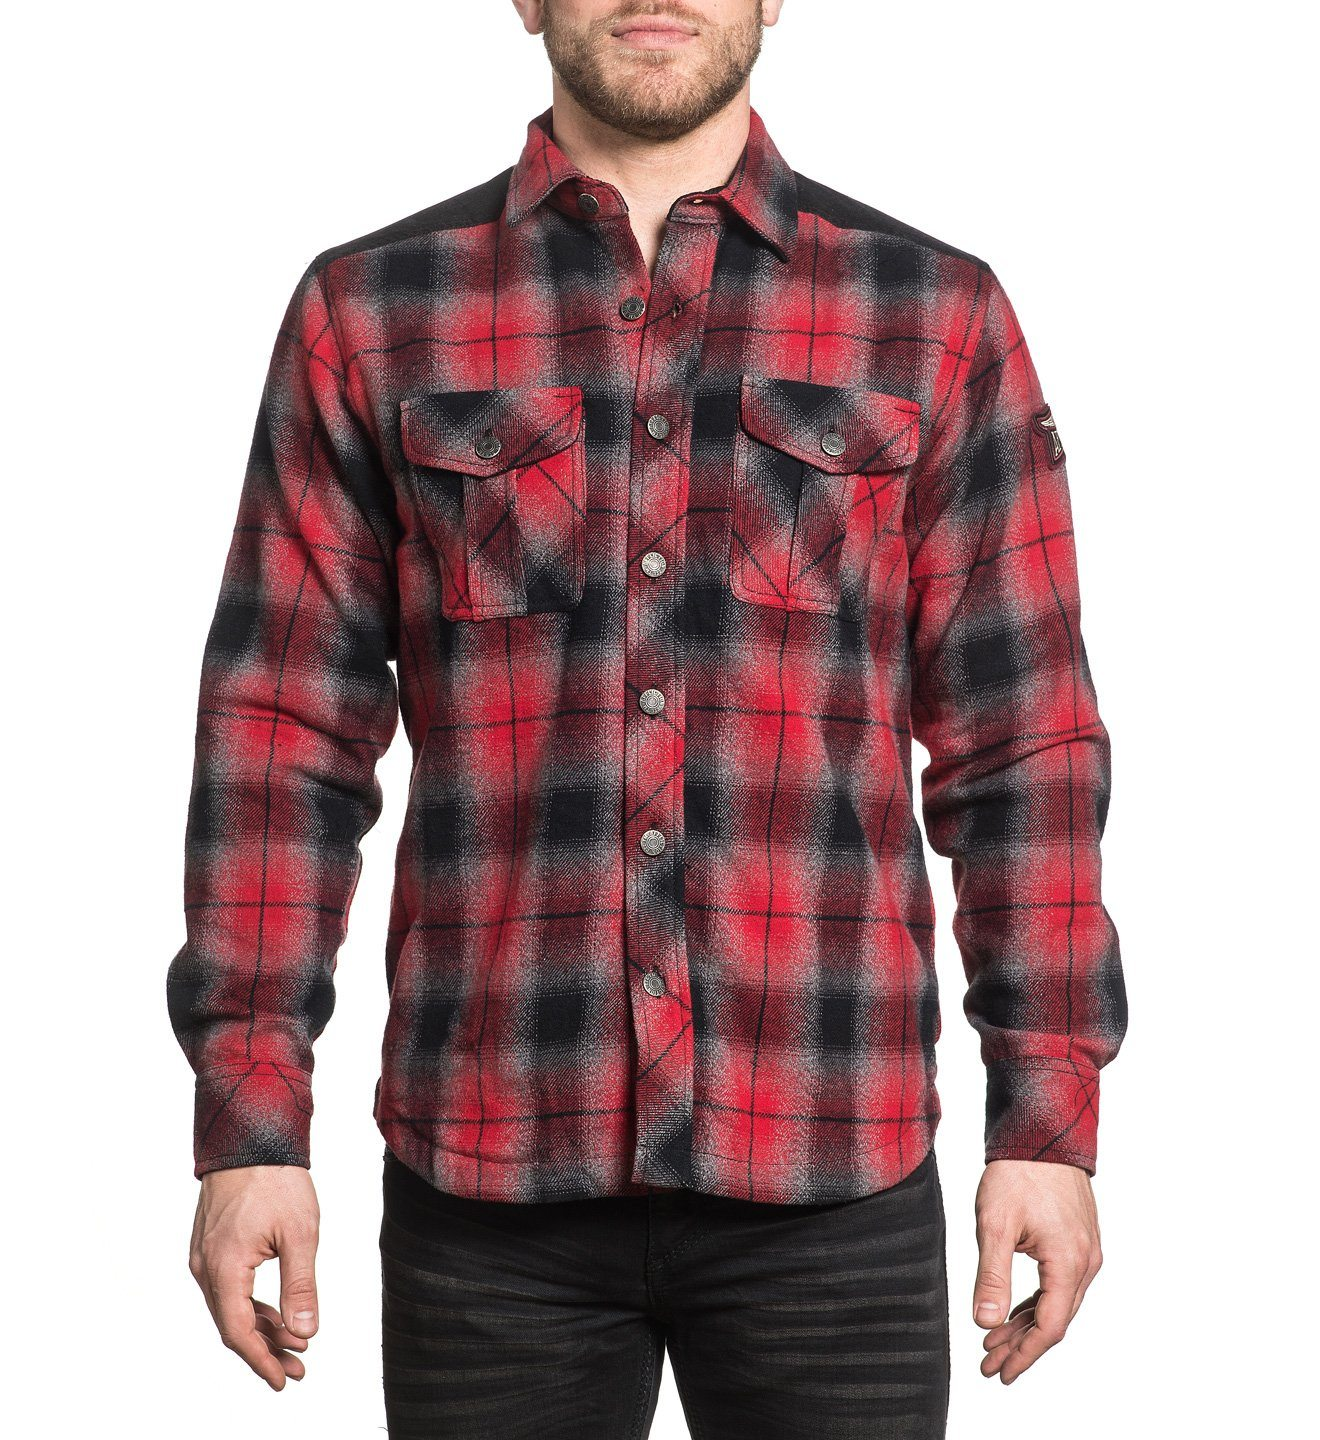 Emerson - Mens Button Down Tops - Affliction Clothing